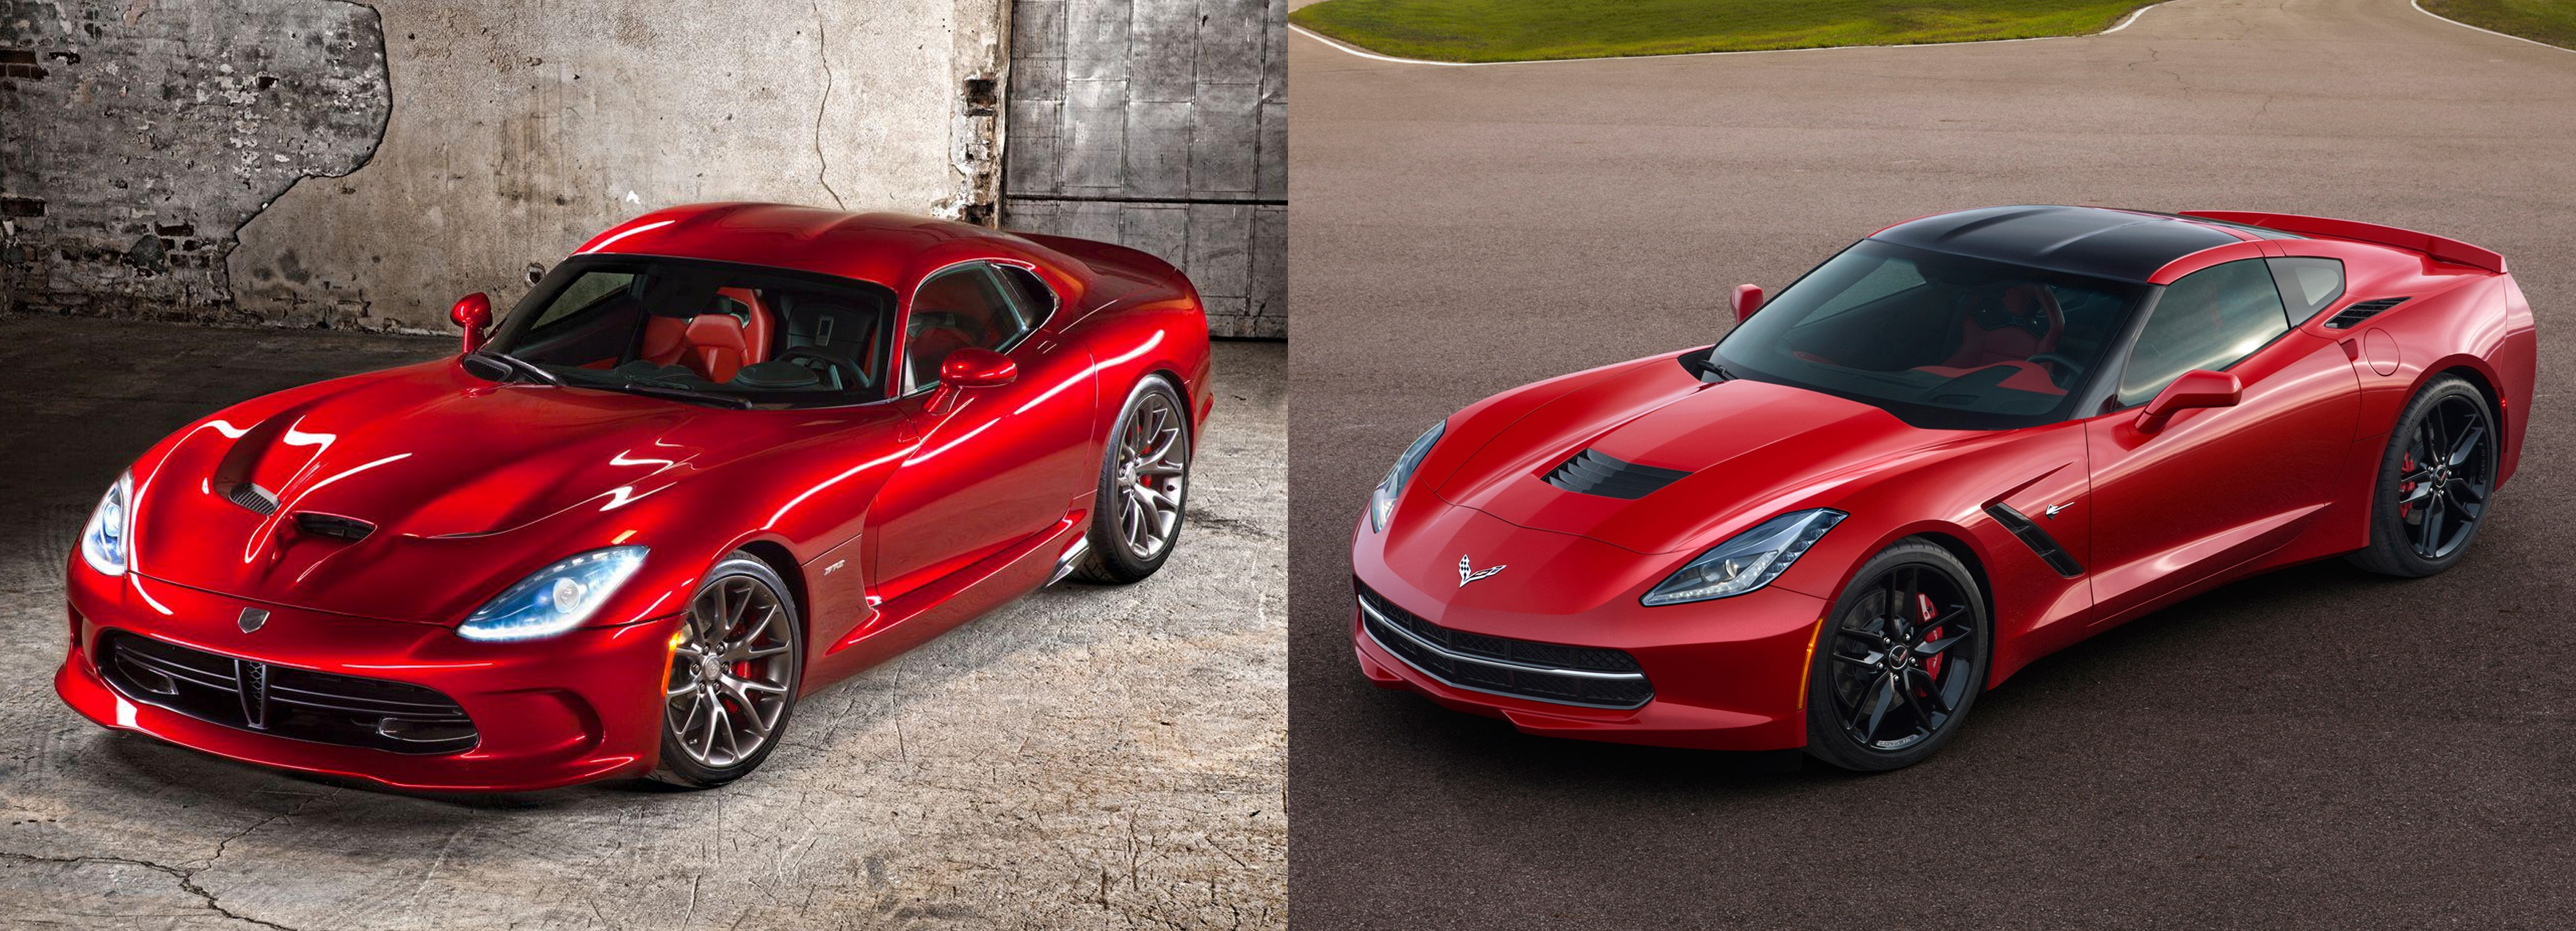 Dodge Viper Or Chevrolet Corvette Fiat Group S World